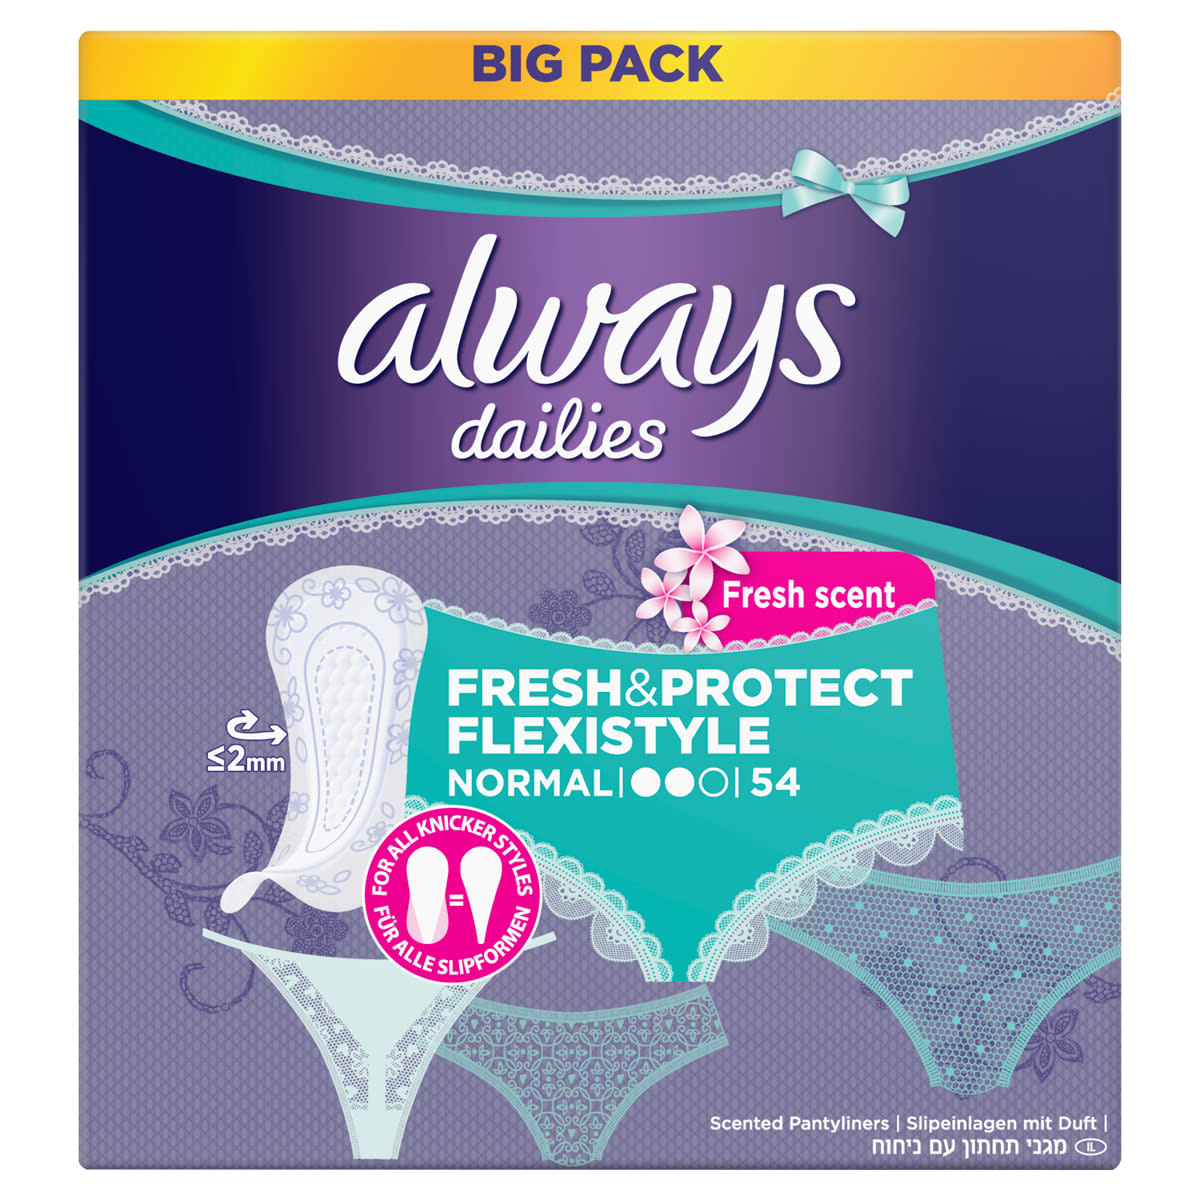 ALWAYS Slipeinlage Fresh & Protect Normal Flexistyle Fresh BigPack 54 count